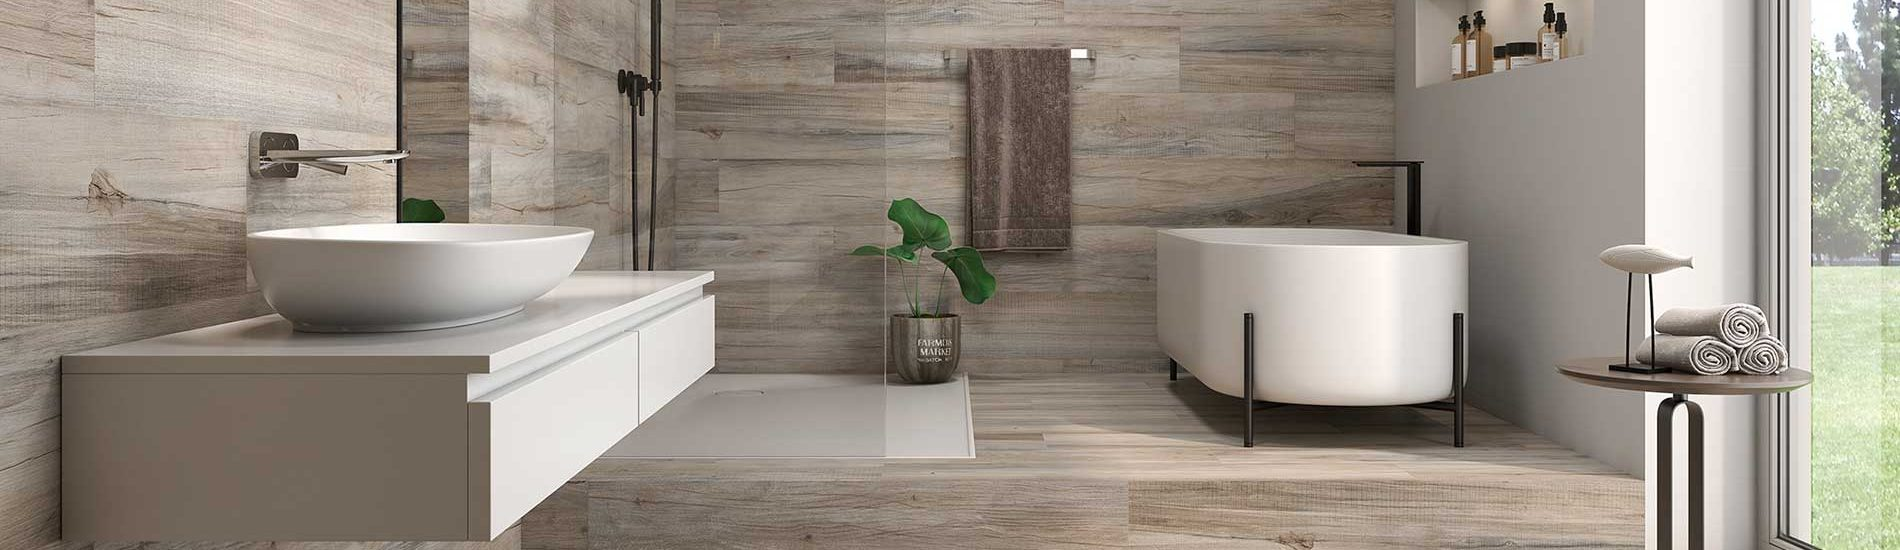 Wood Looking Tile Bathroom Jazz Wood Look Spanish Floor Wall Tile Bv Tile And Stone